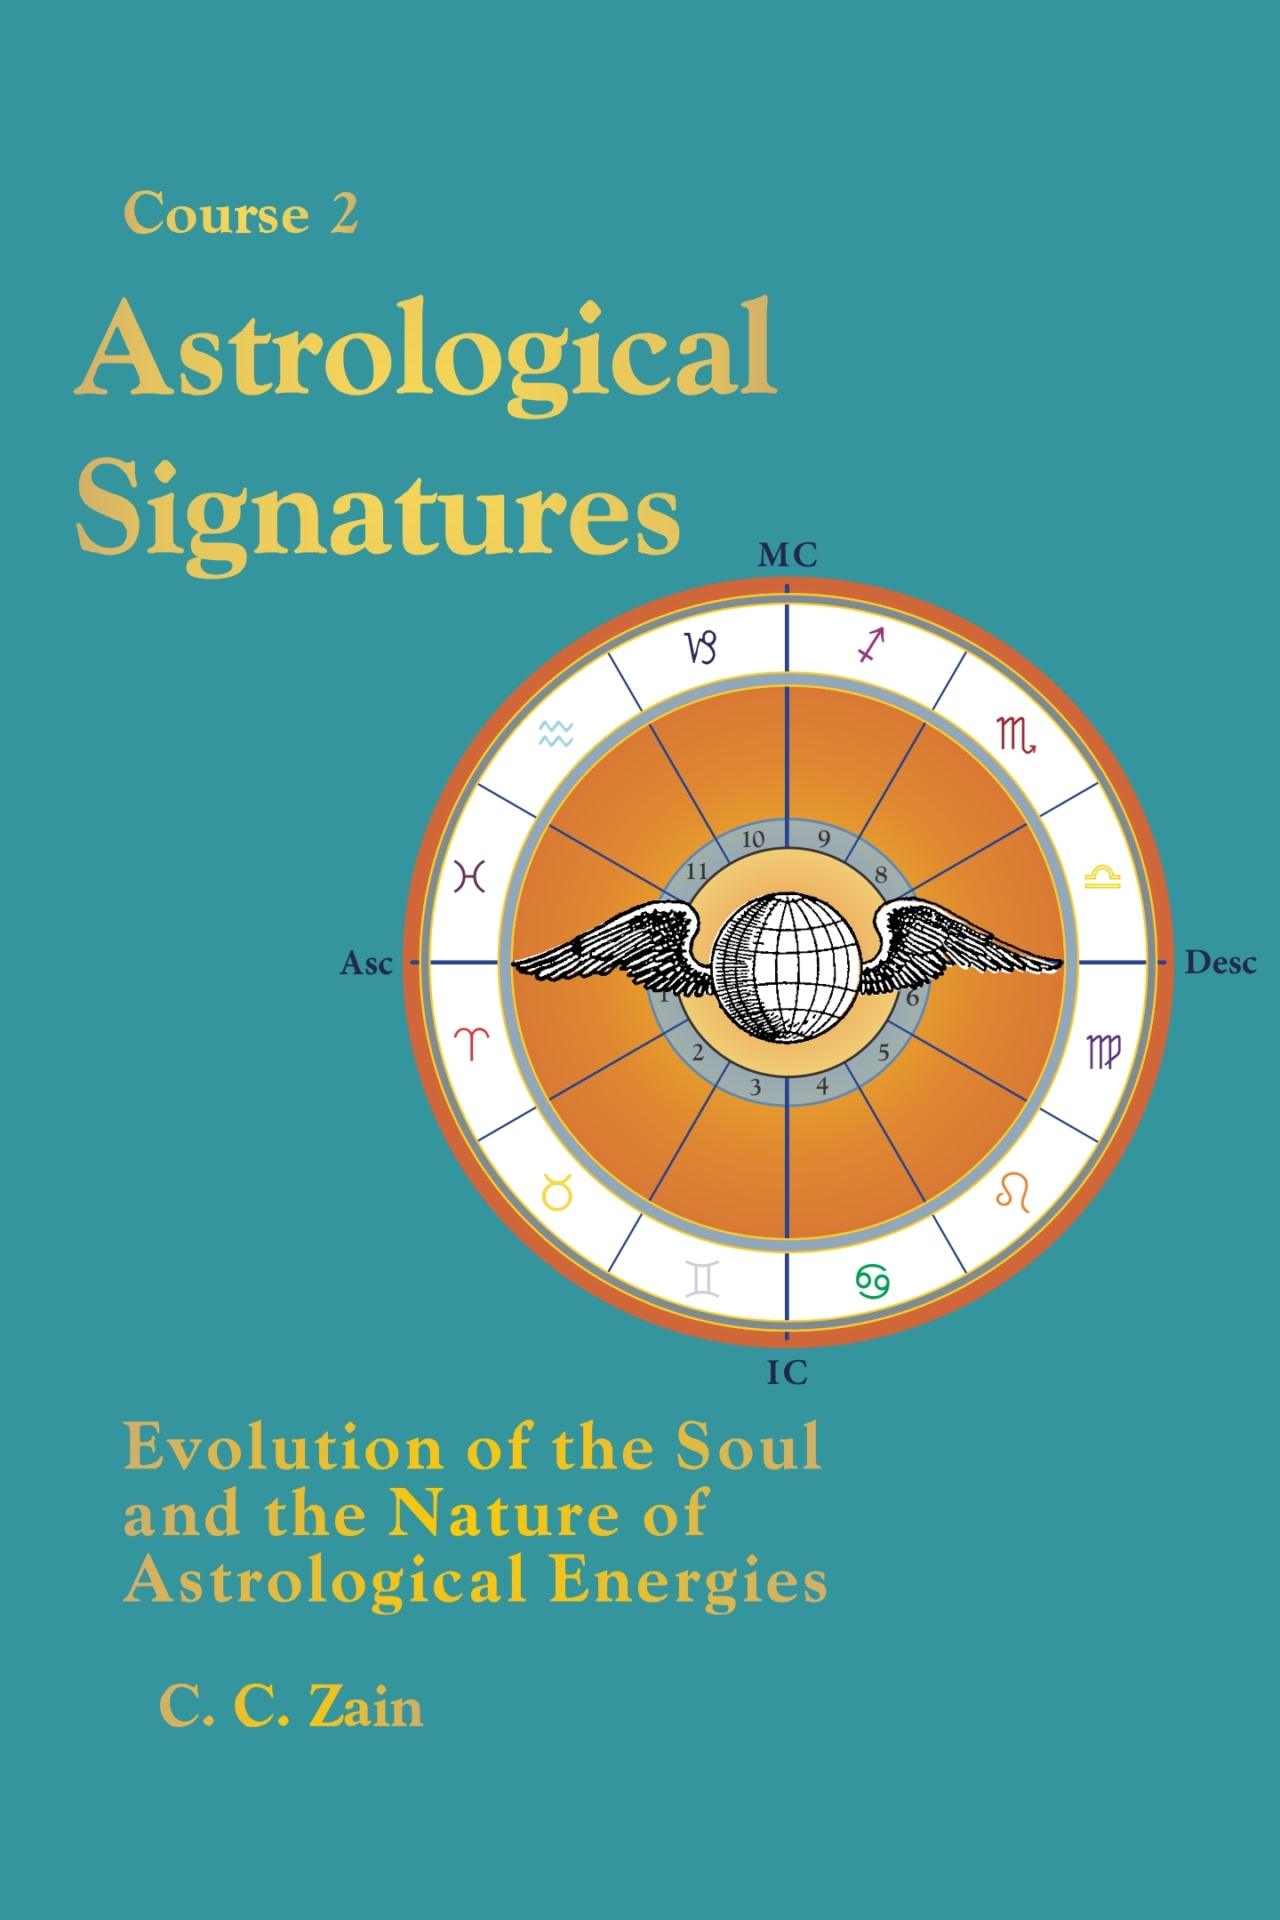 https://study.academyofhermeticarts.org/wp-content/uploads/2020/04/02_Astrological_Signatures_eBook_Cover-1280x1920.jpg